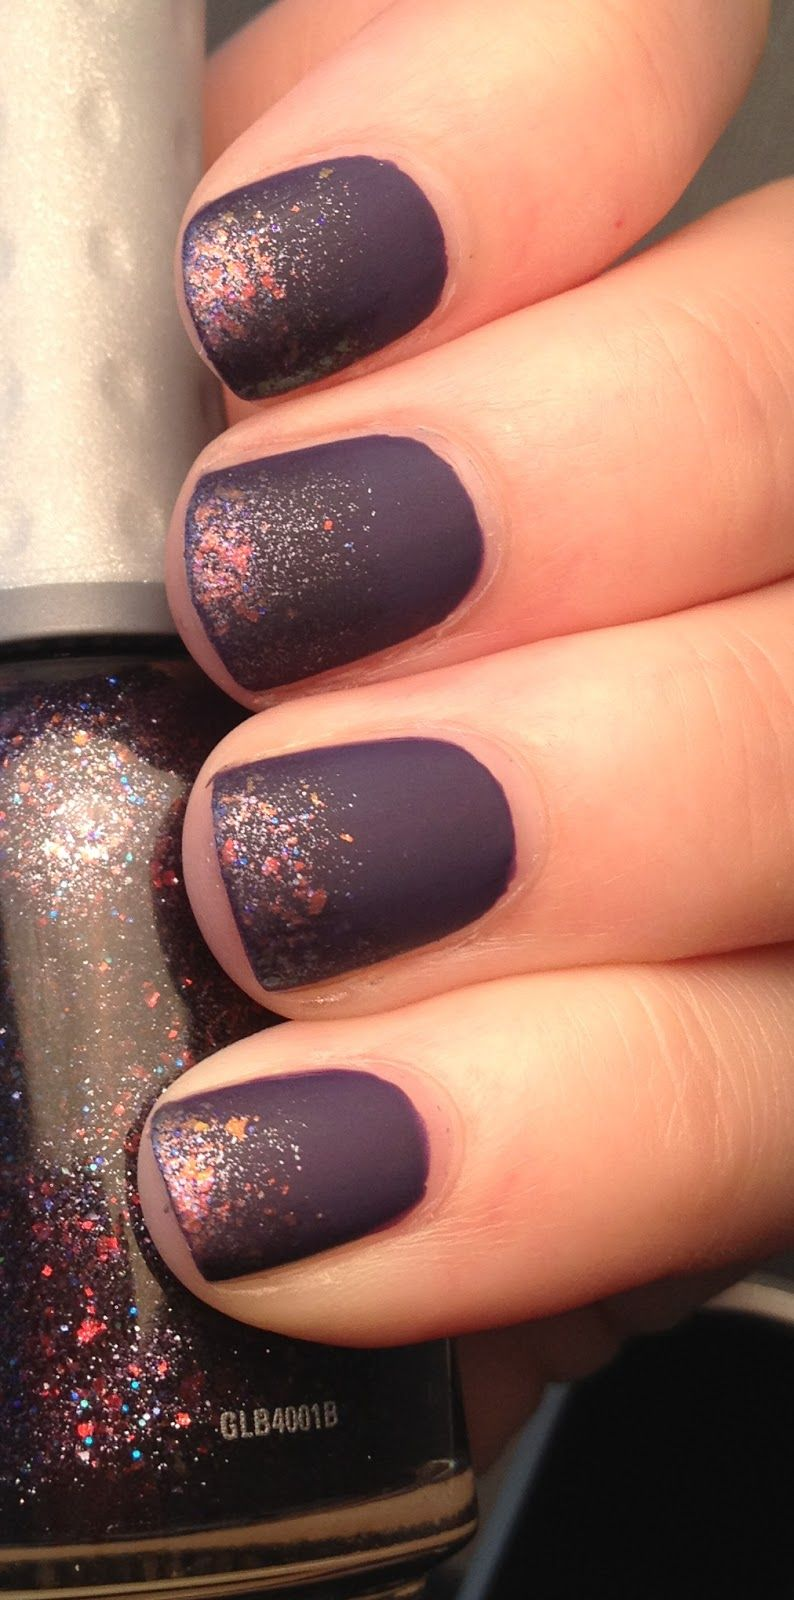 Matte and glitter nails.......... Wow | Fashion | Pinterest | Naan ...